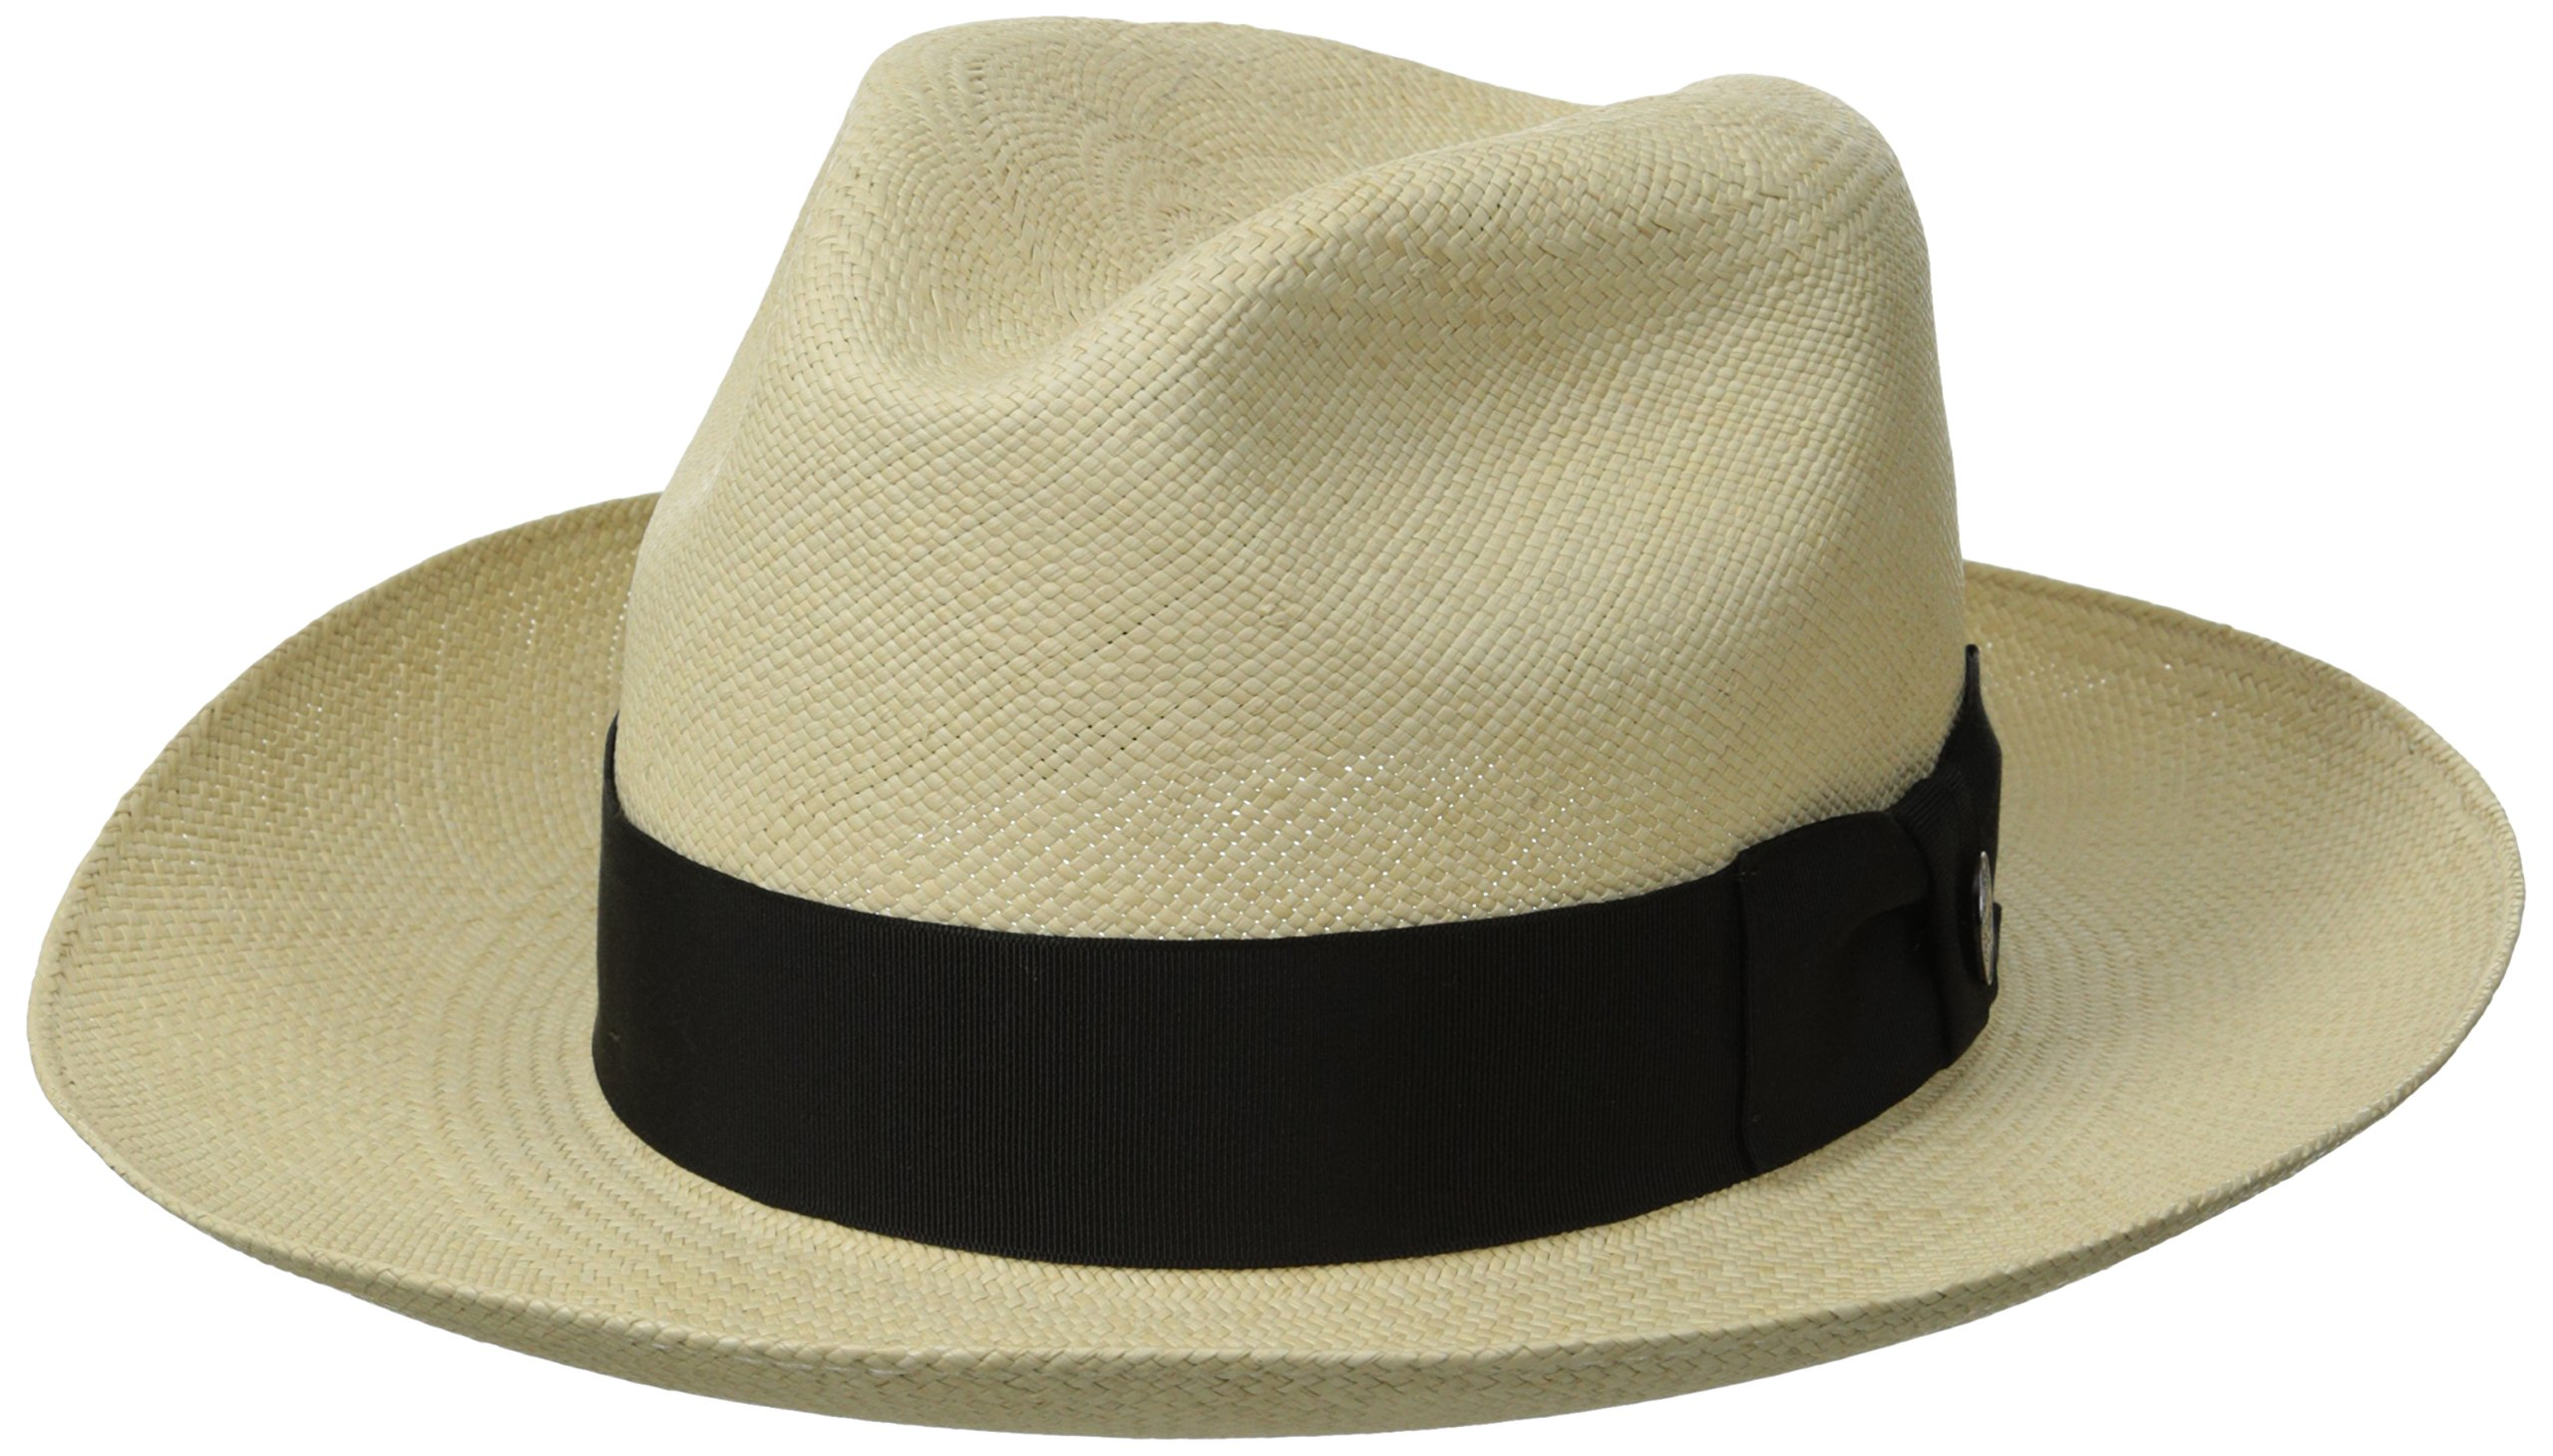 Stetson Men's Centerdent Fine Panama Hat, Natural, 7.125